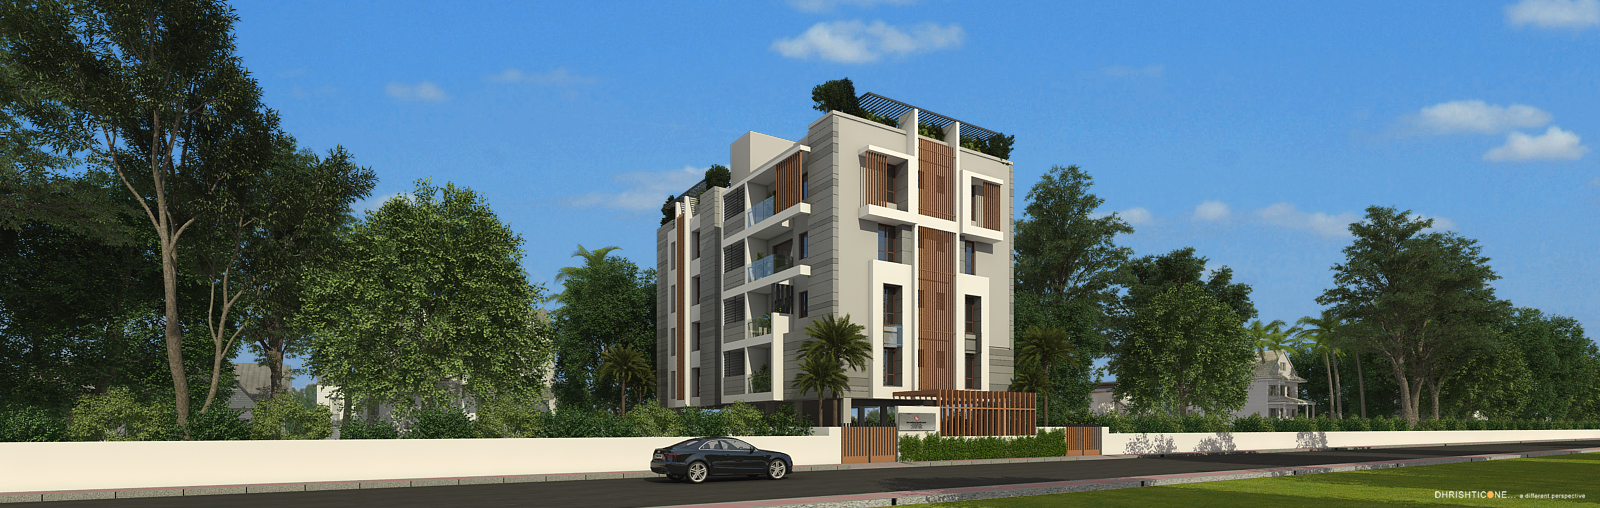 Flats for Sale in Chetpet